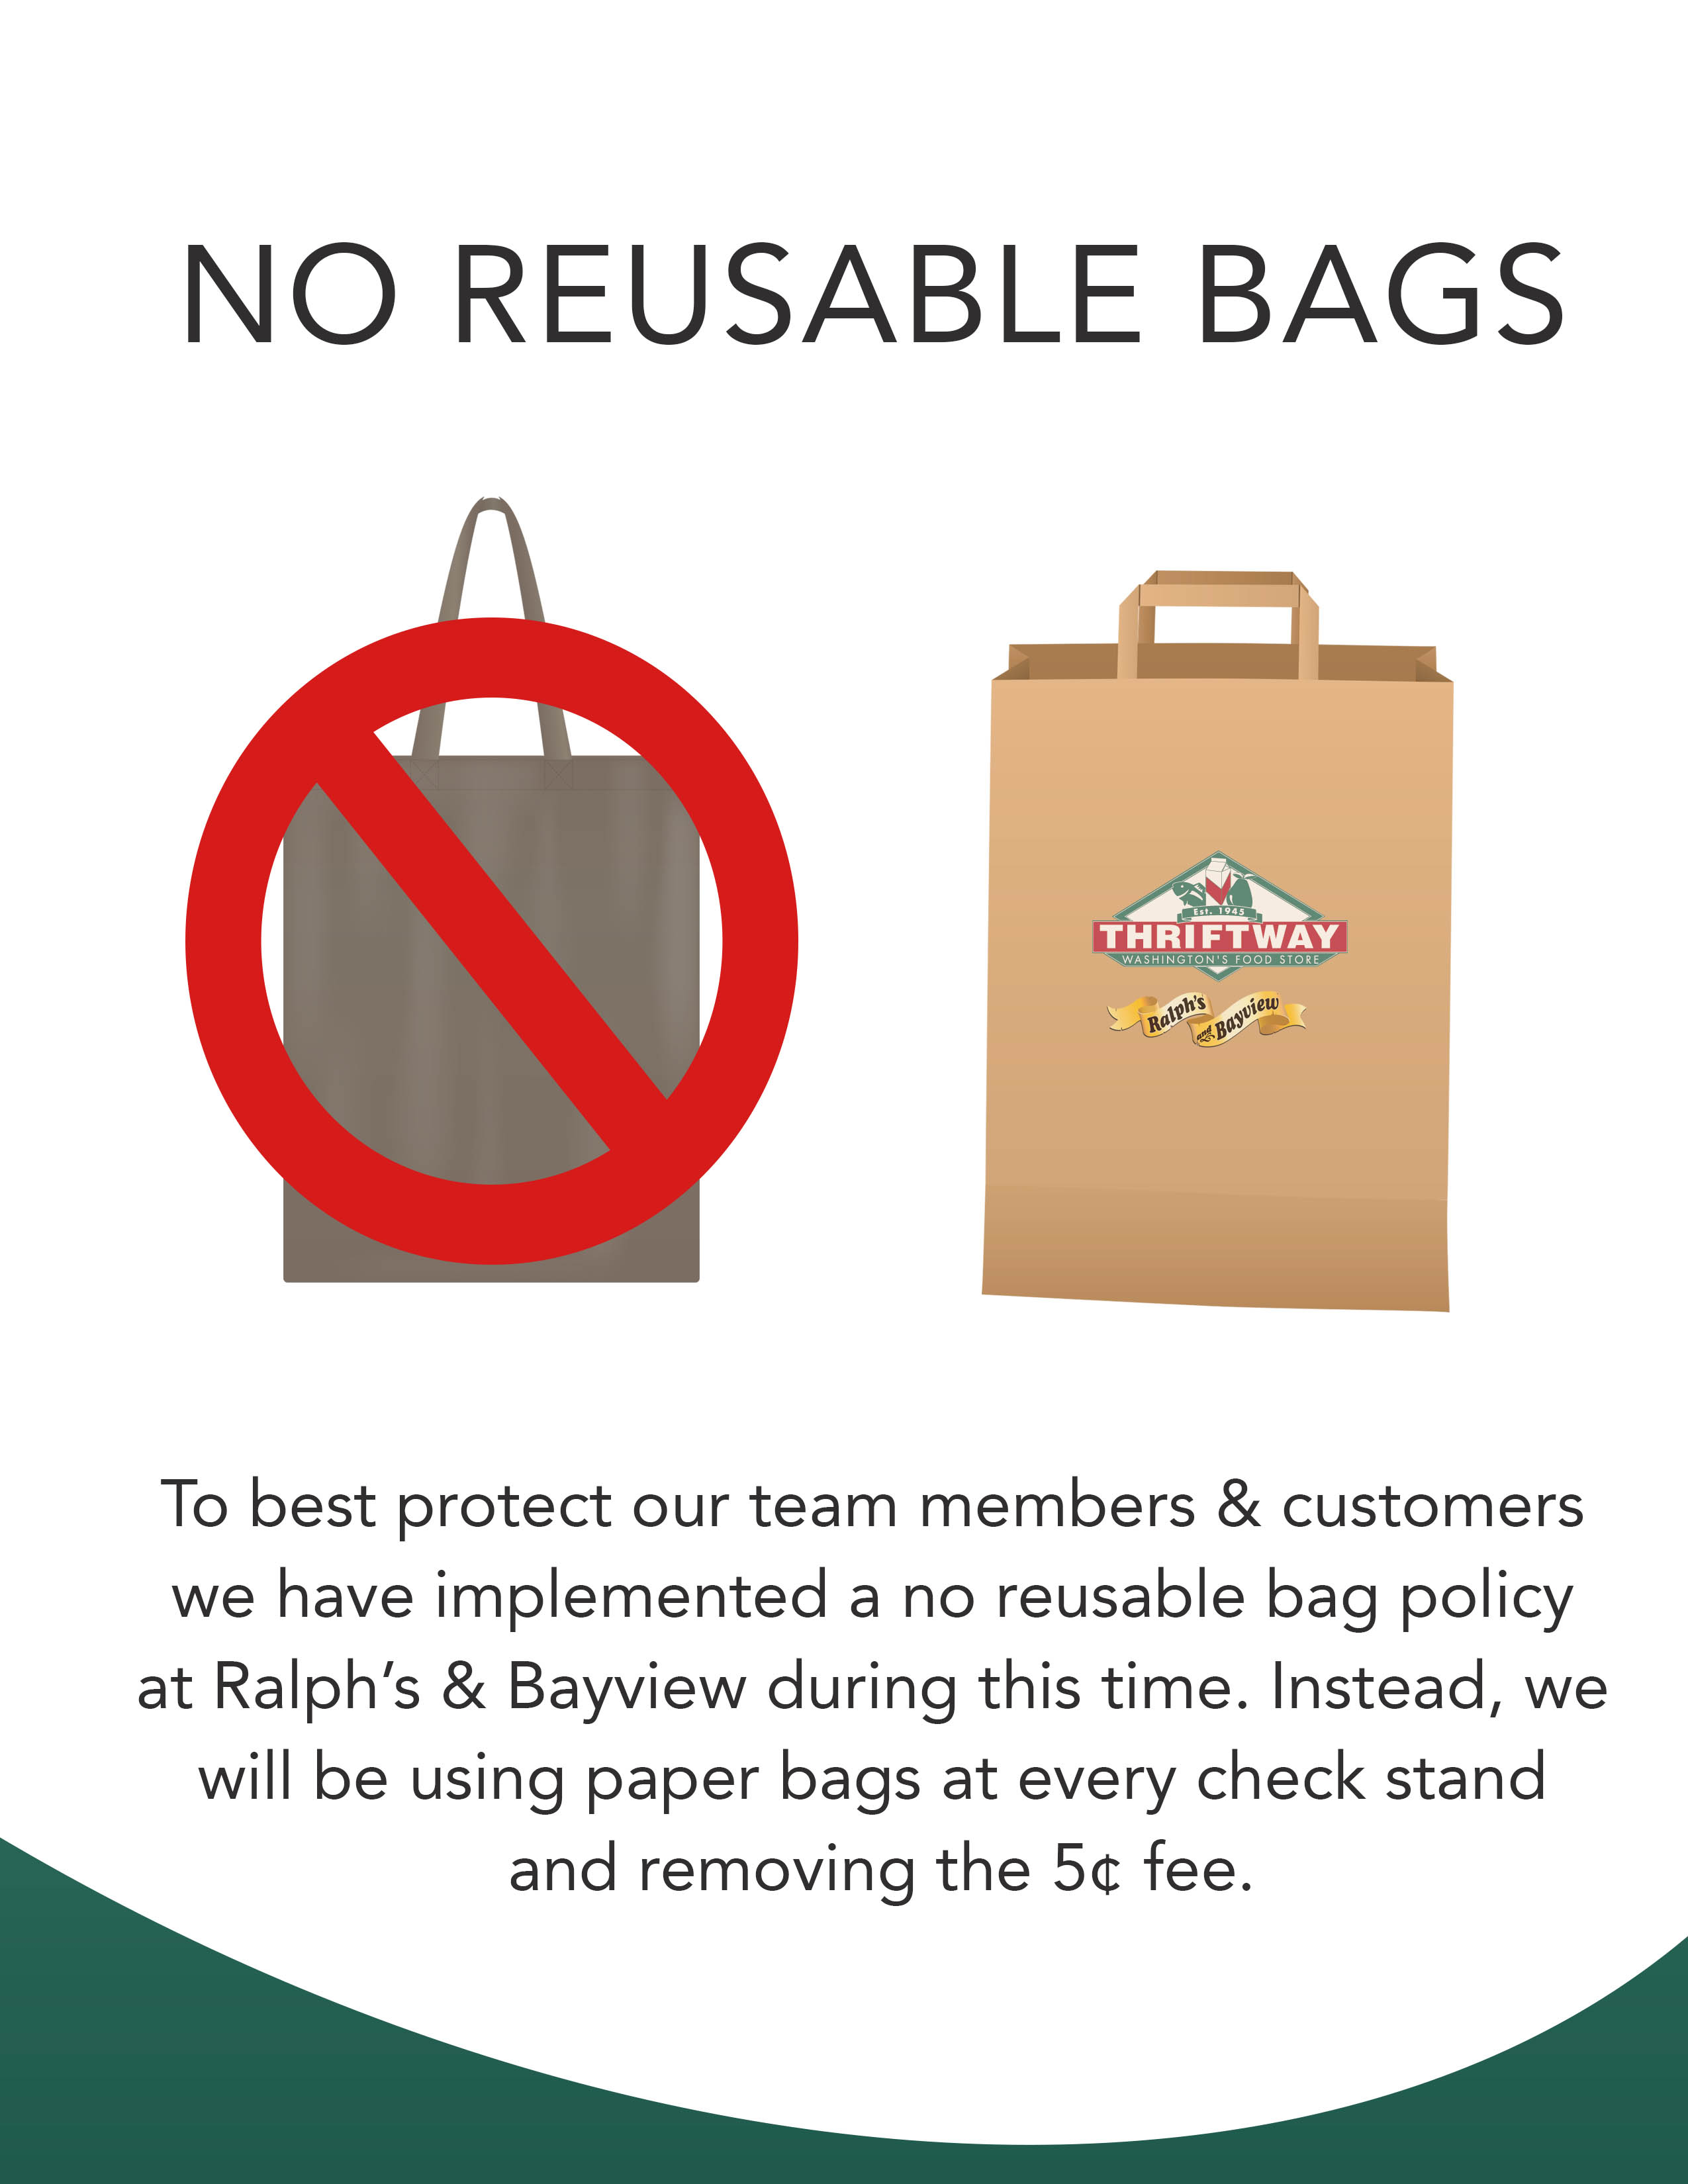 NO REUSABLE BAGS: To best protect our team members & customers we have implemented a no reusable bag policy at Ralph's & Bayview during this time. Instead, we will be using paper bags at every check stand and removing the 5¢ fee.